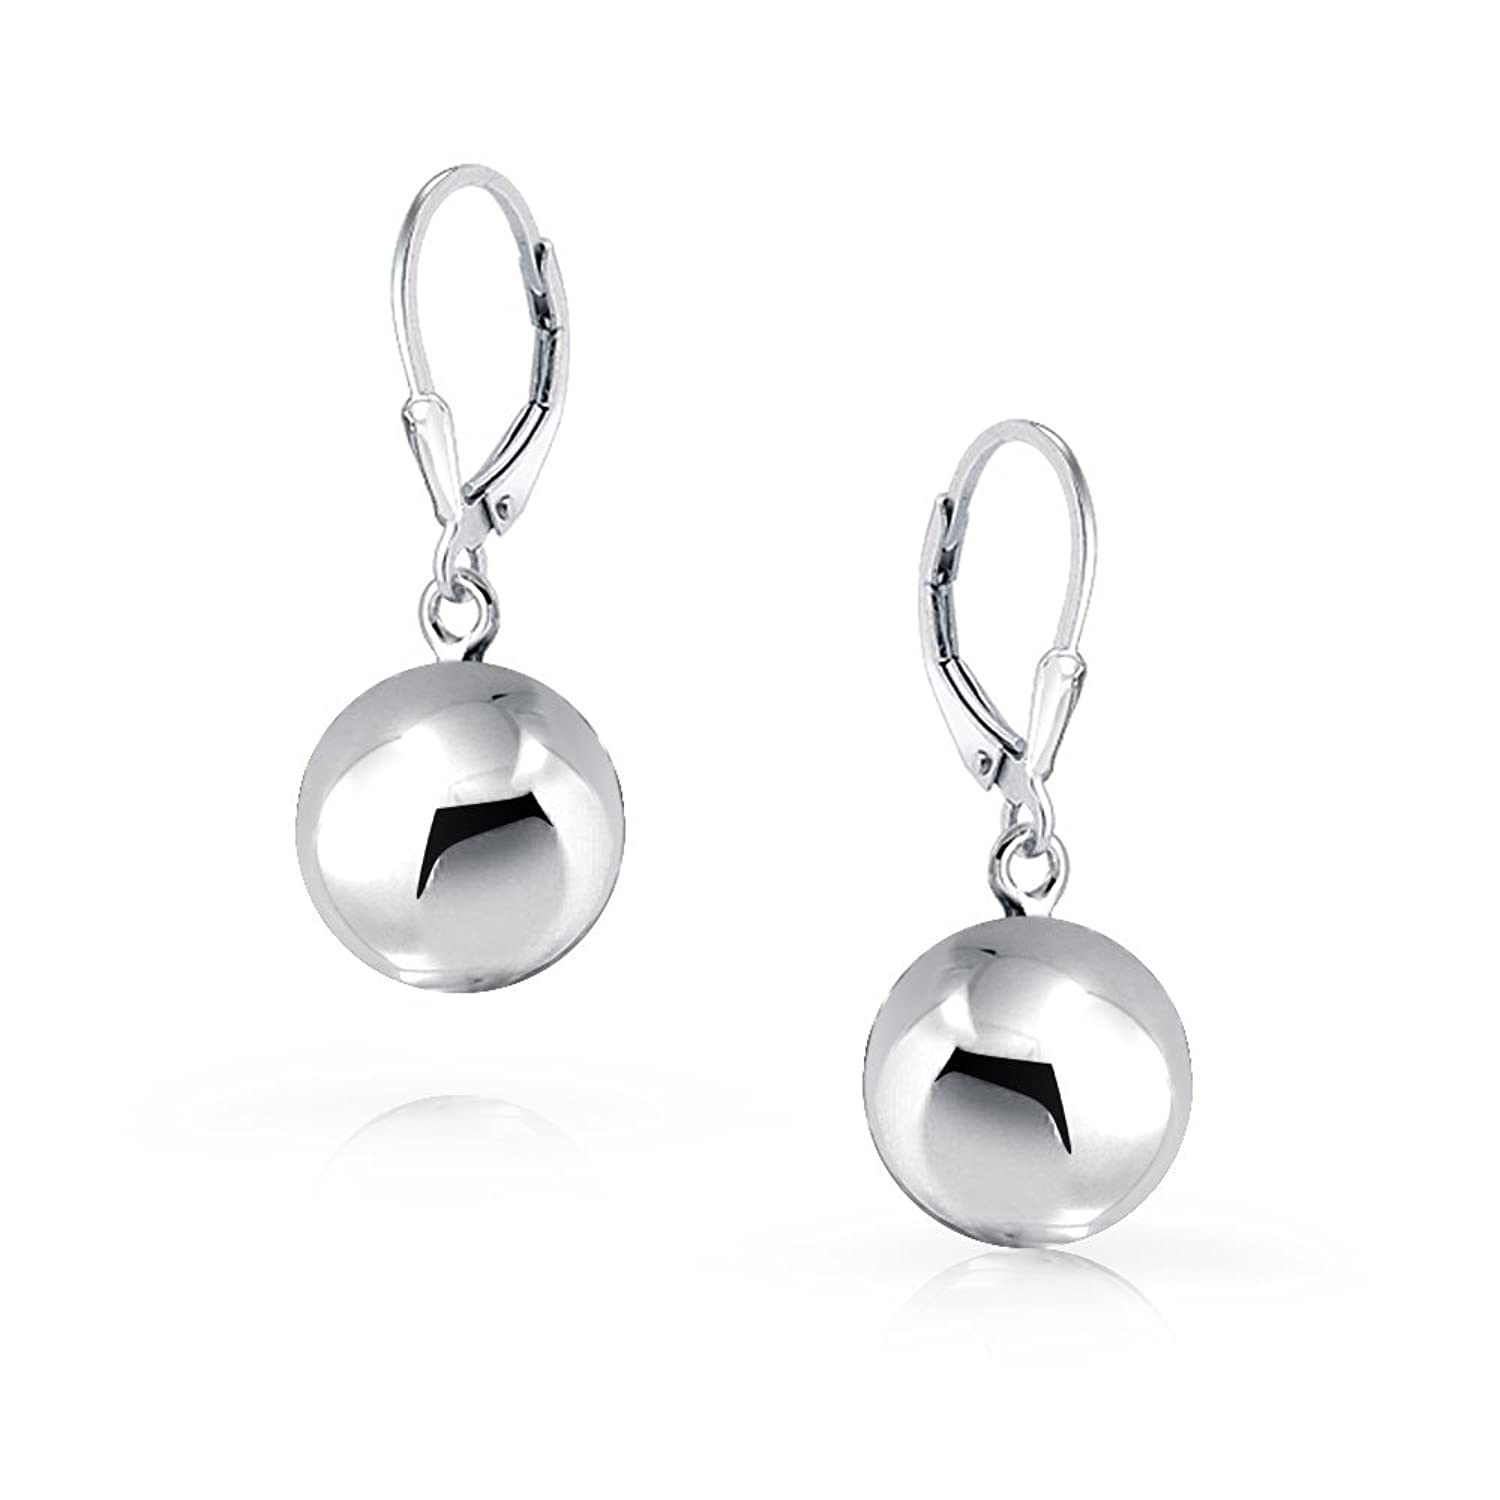 8511b8ad4f933 Sterling Silver Round Bead Ball Leverback Earrings 10MM: Amazon.co ...